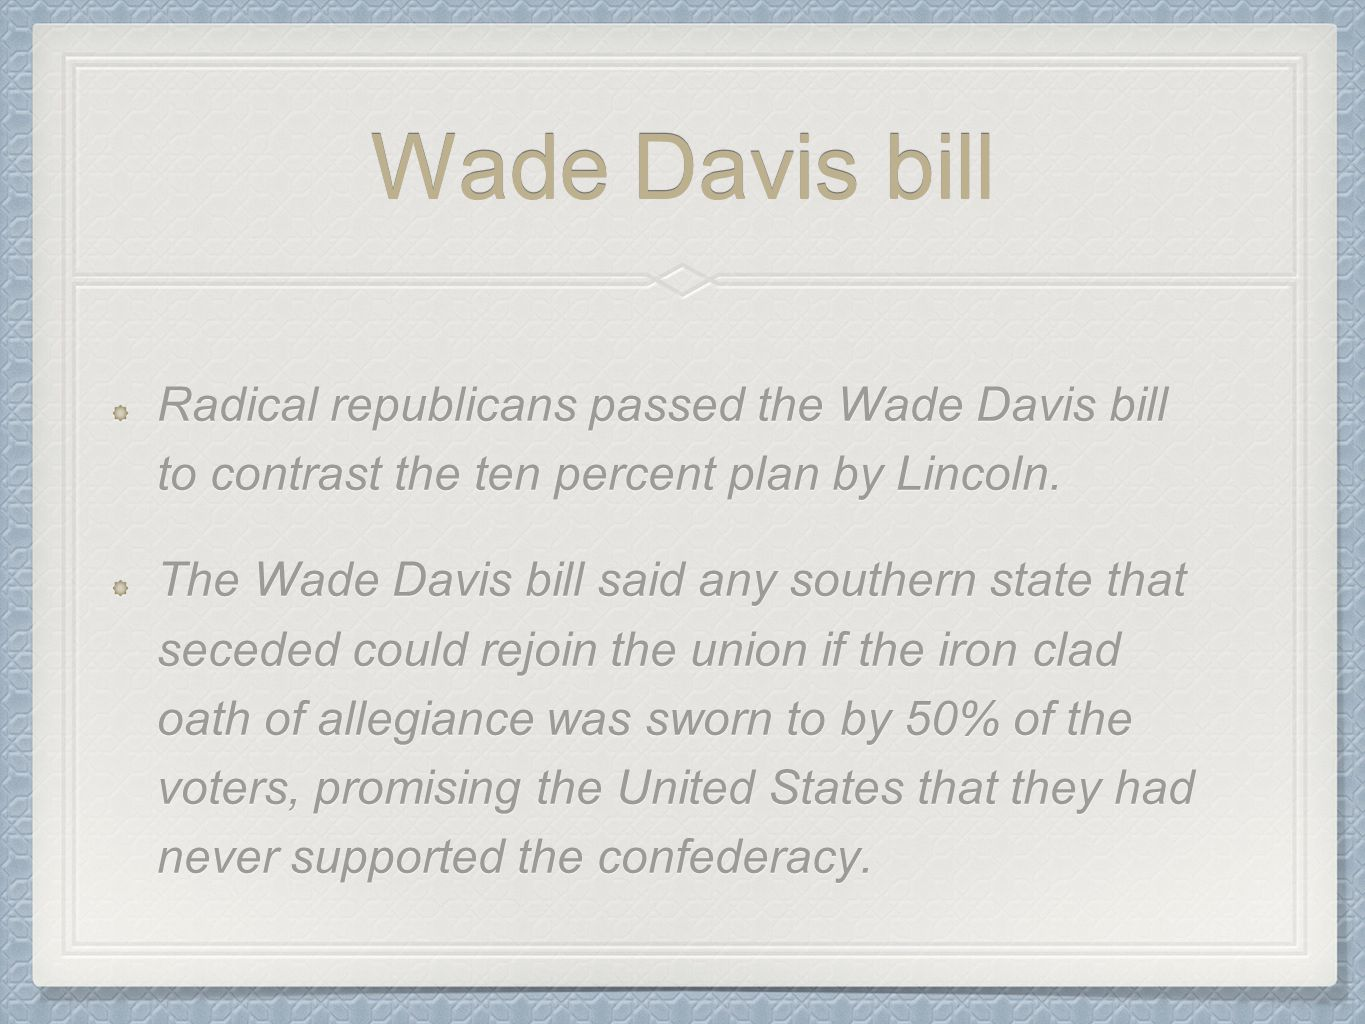 Wade Davis bill Radical republicans passed the Wade Davis bill to contrast the ten percent plan by Lincoln.